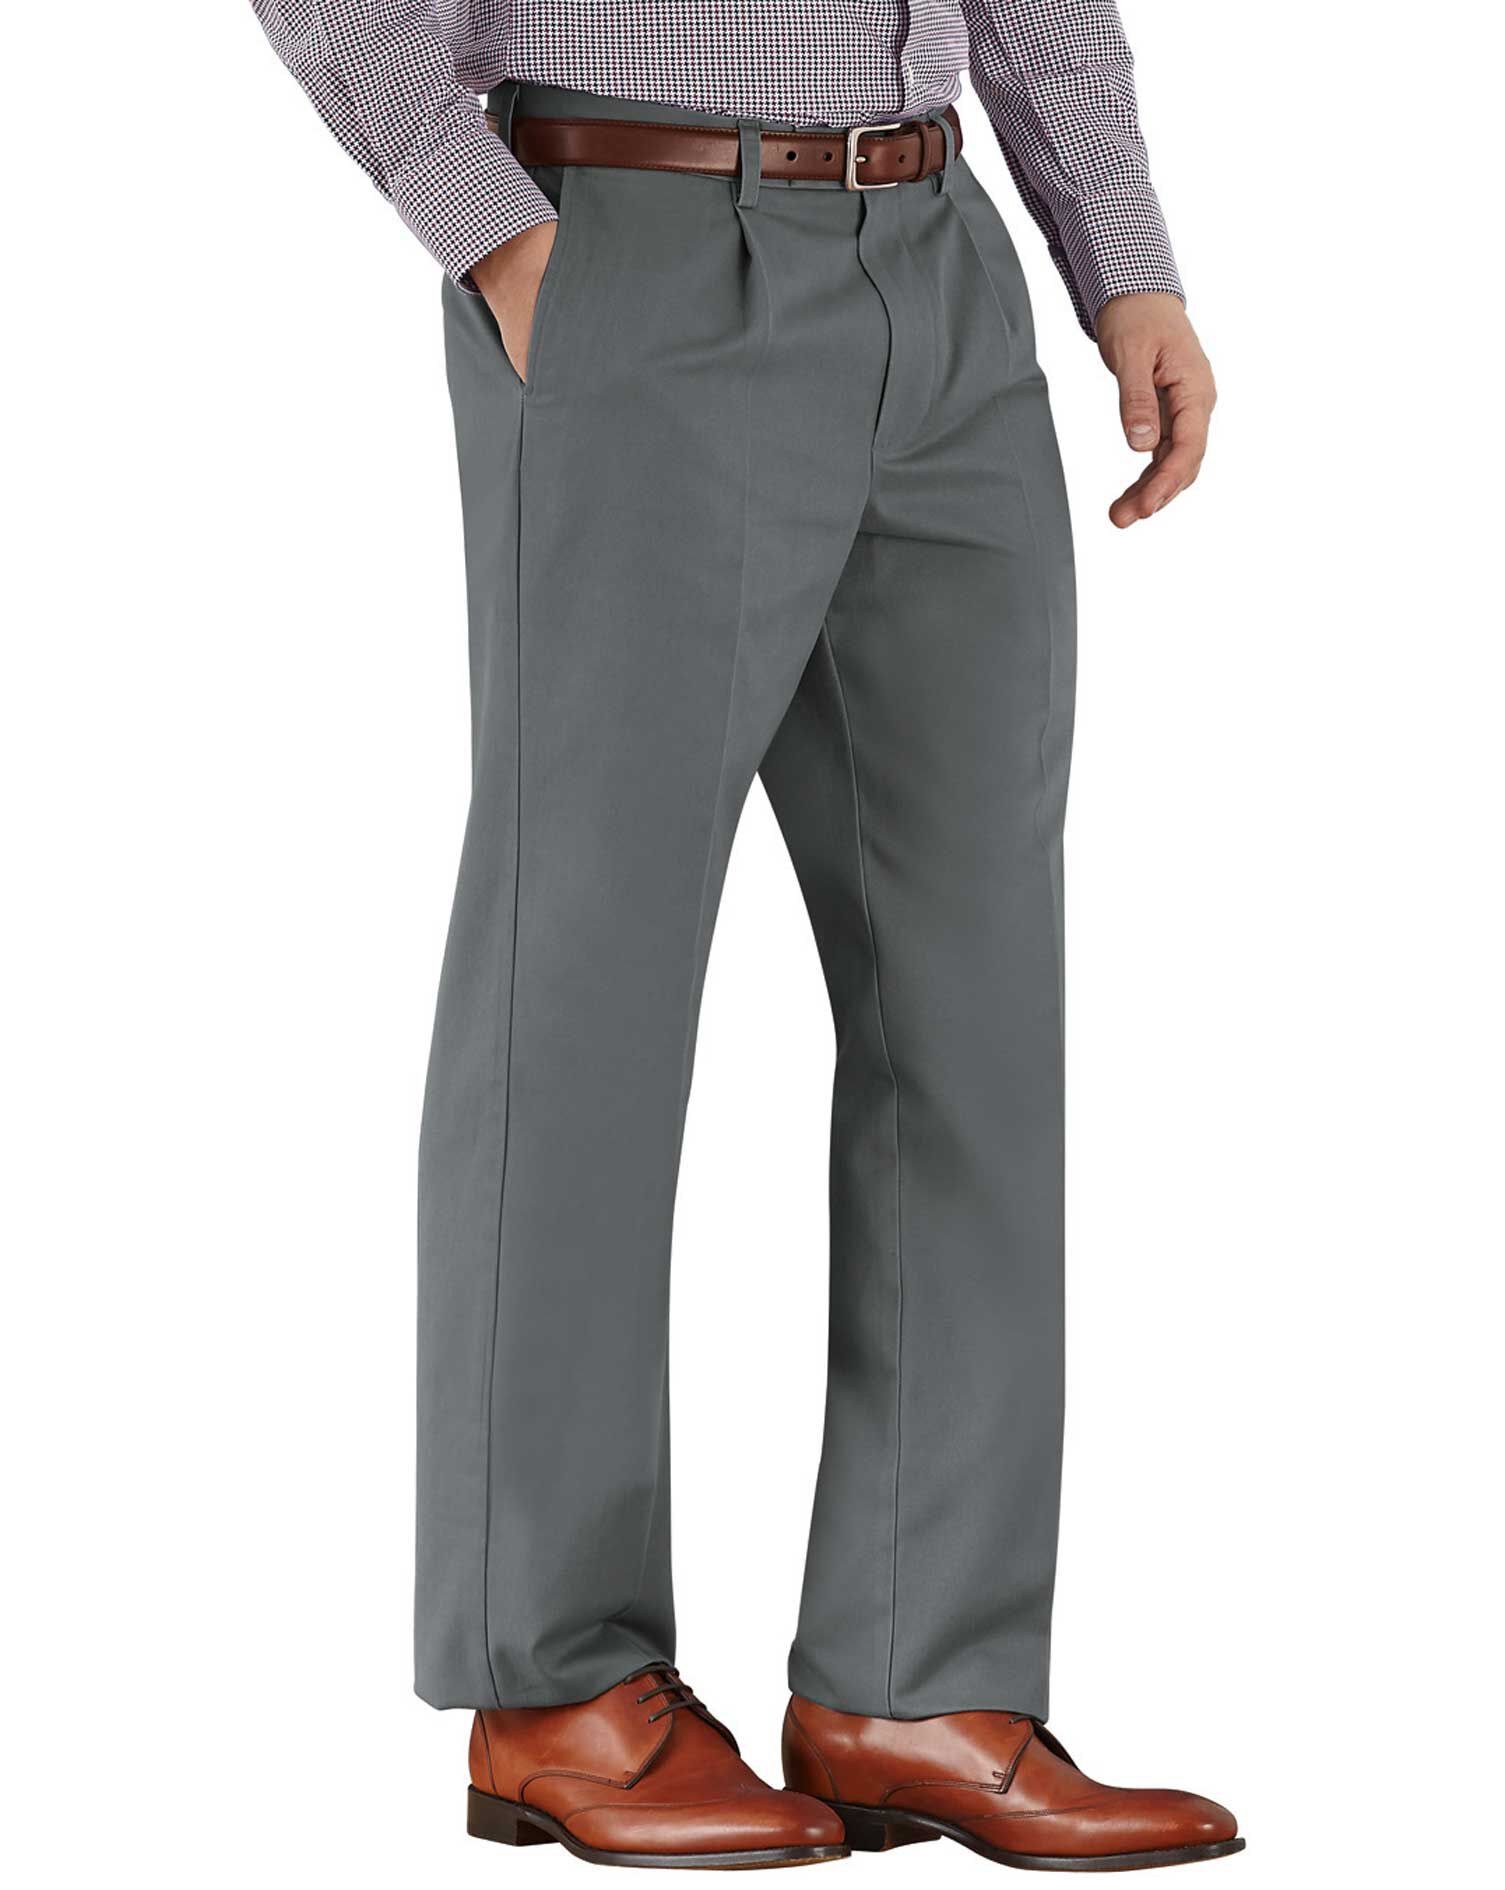 Grey Classic Fit Single Pleat Non-Iron Cotton Chino Trousers Size W36 L32 by Charles Tyrwhitt